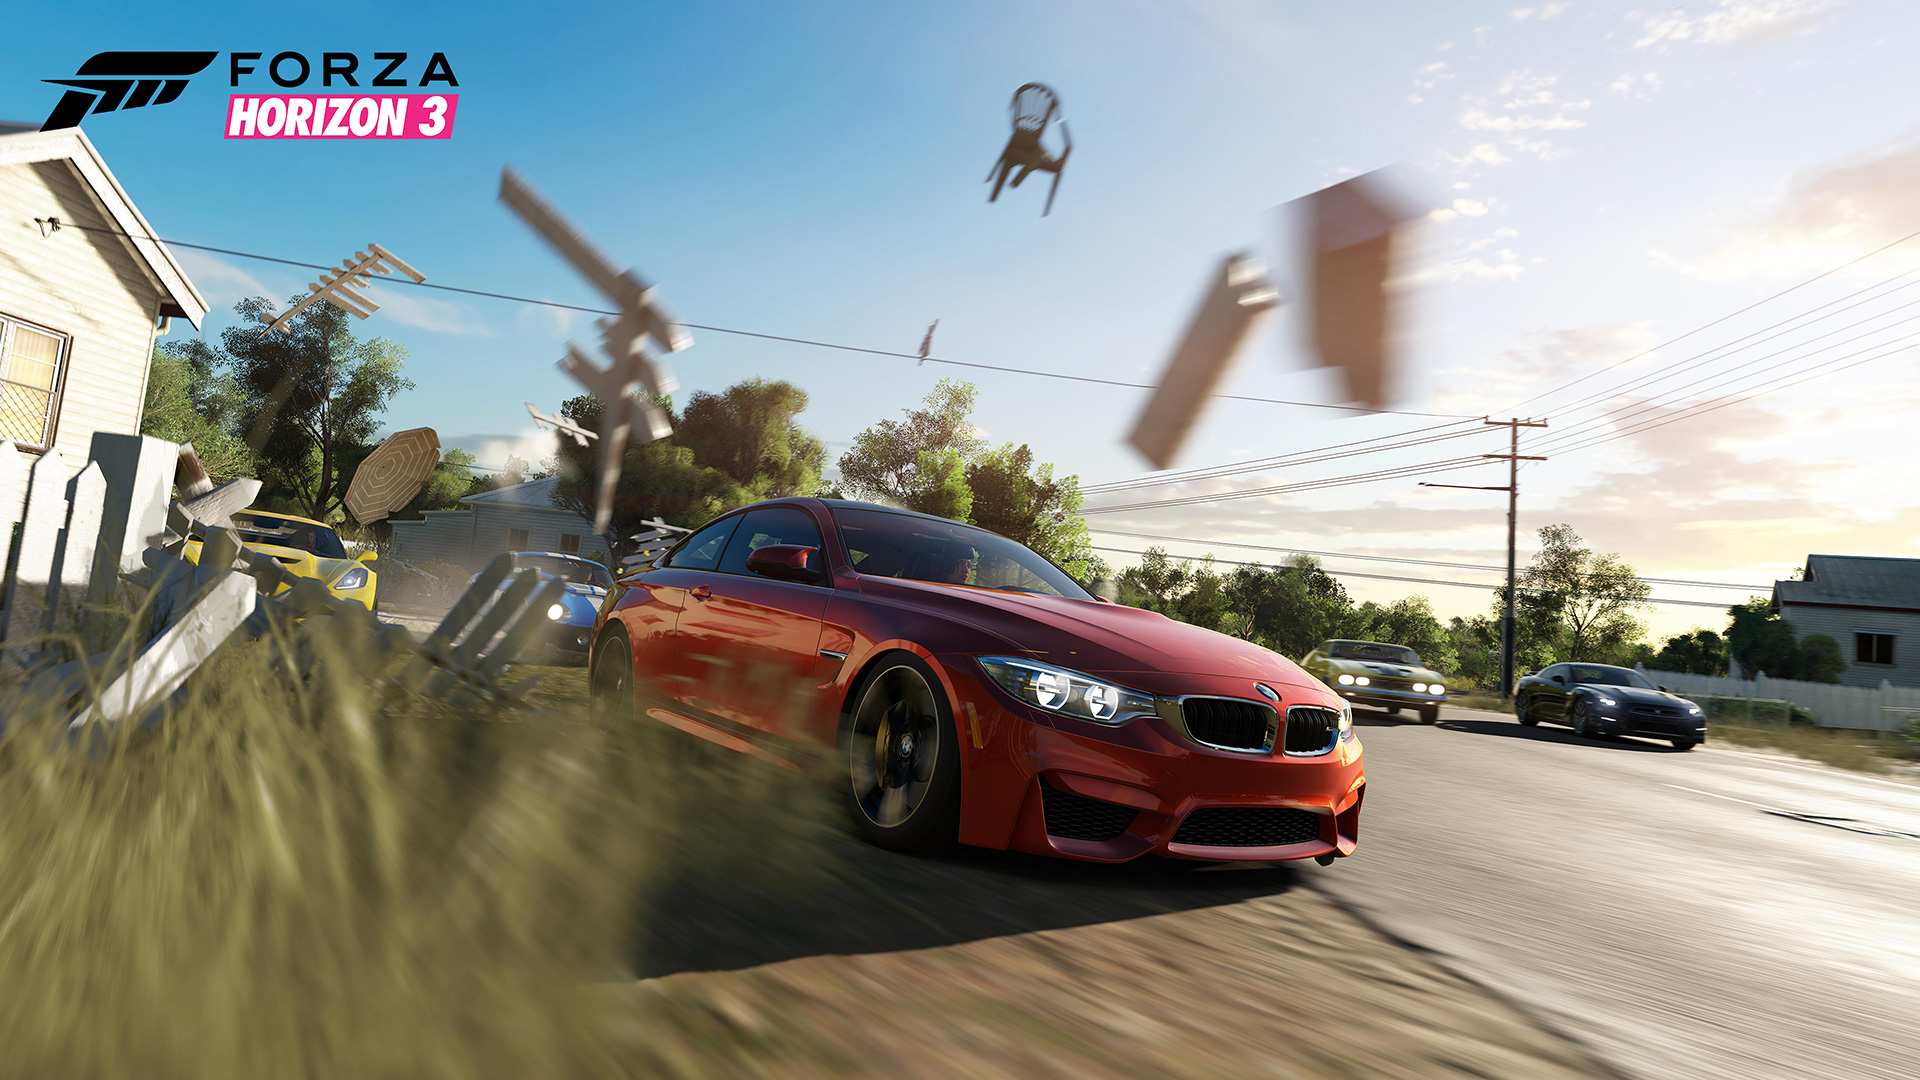 Forza Horizon 3 Gets Its Native 4K Update